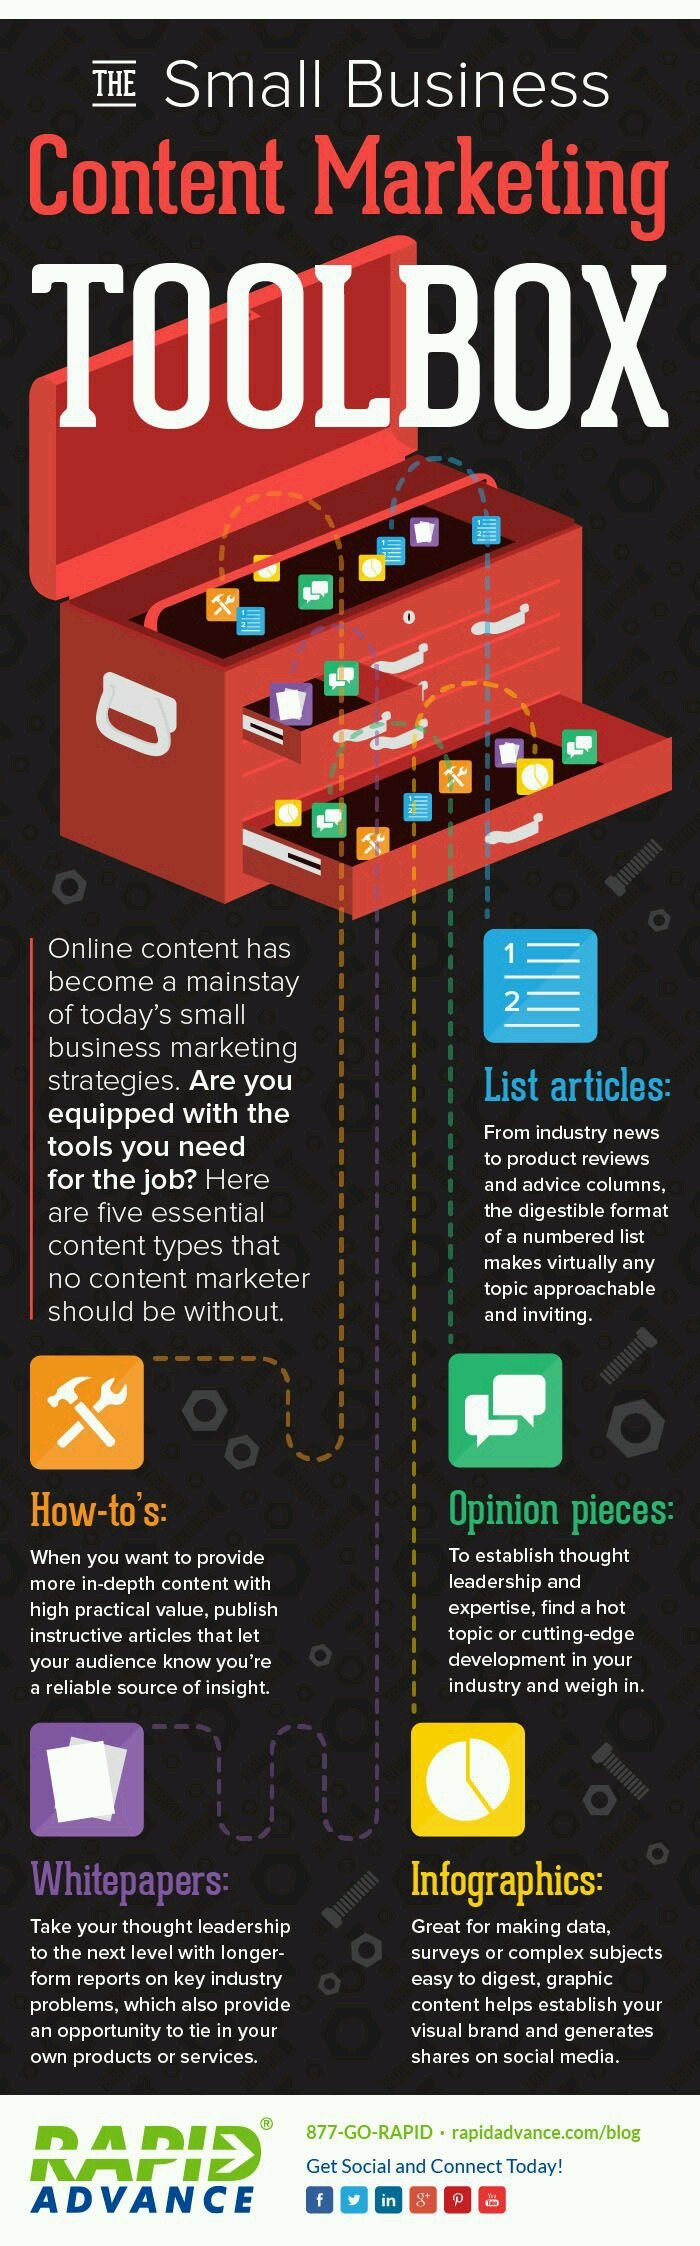 The Small Business Content Marketing Toolbox #infographic